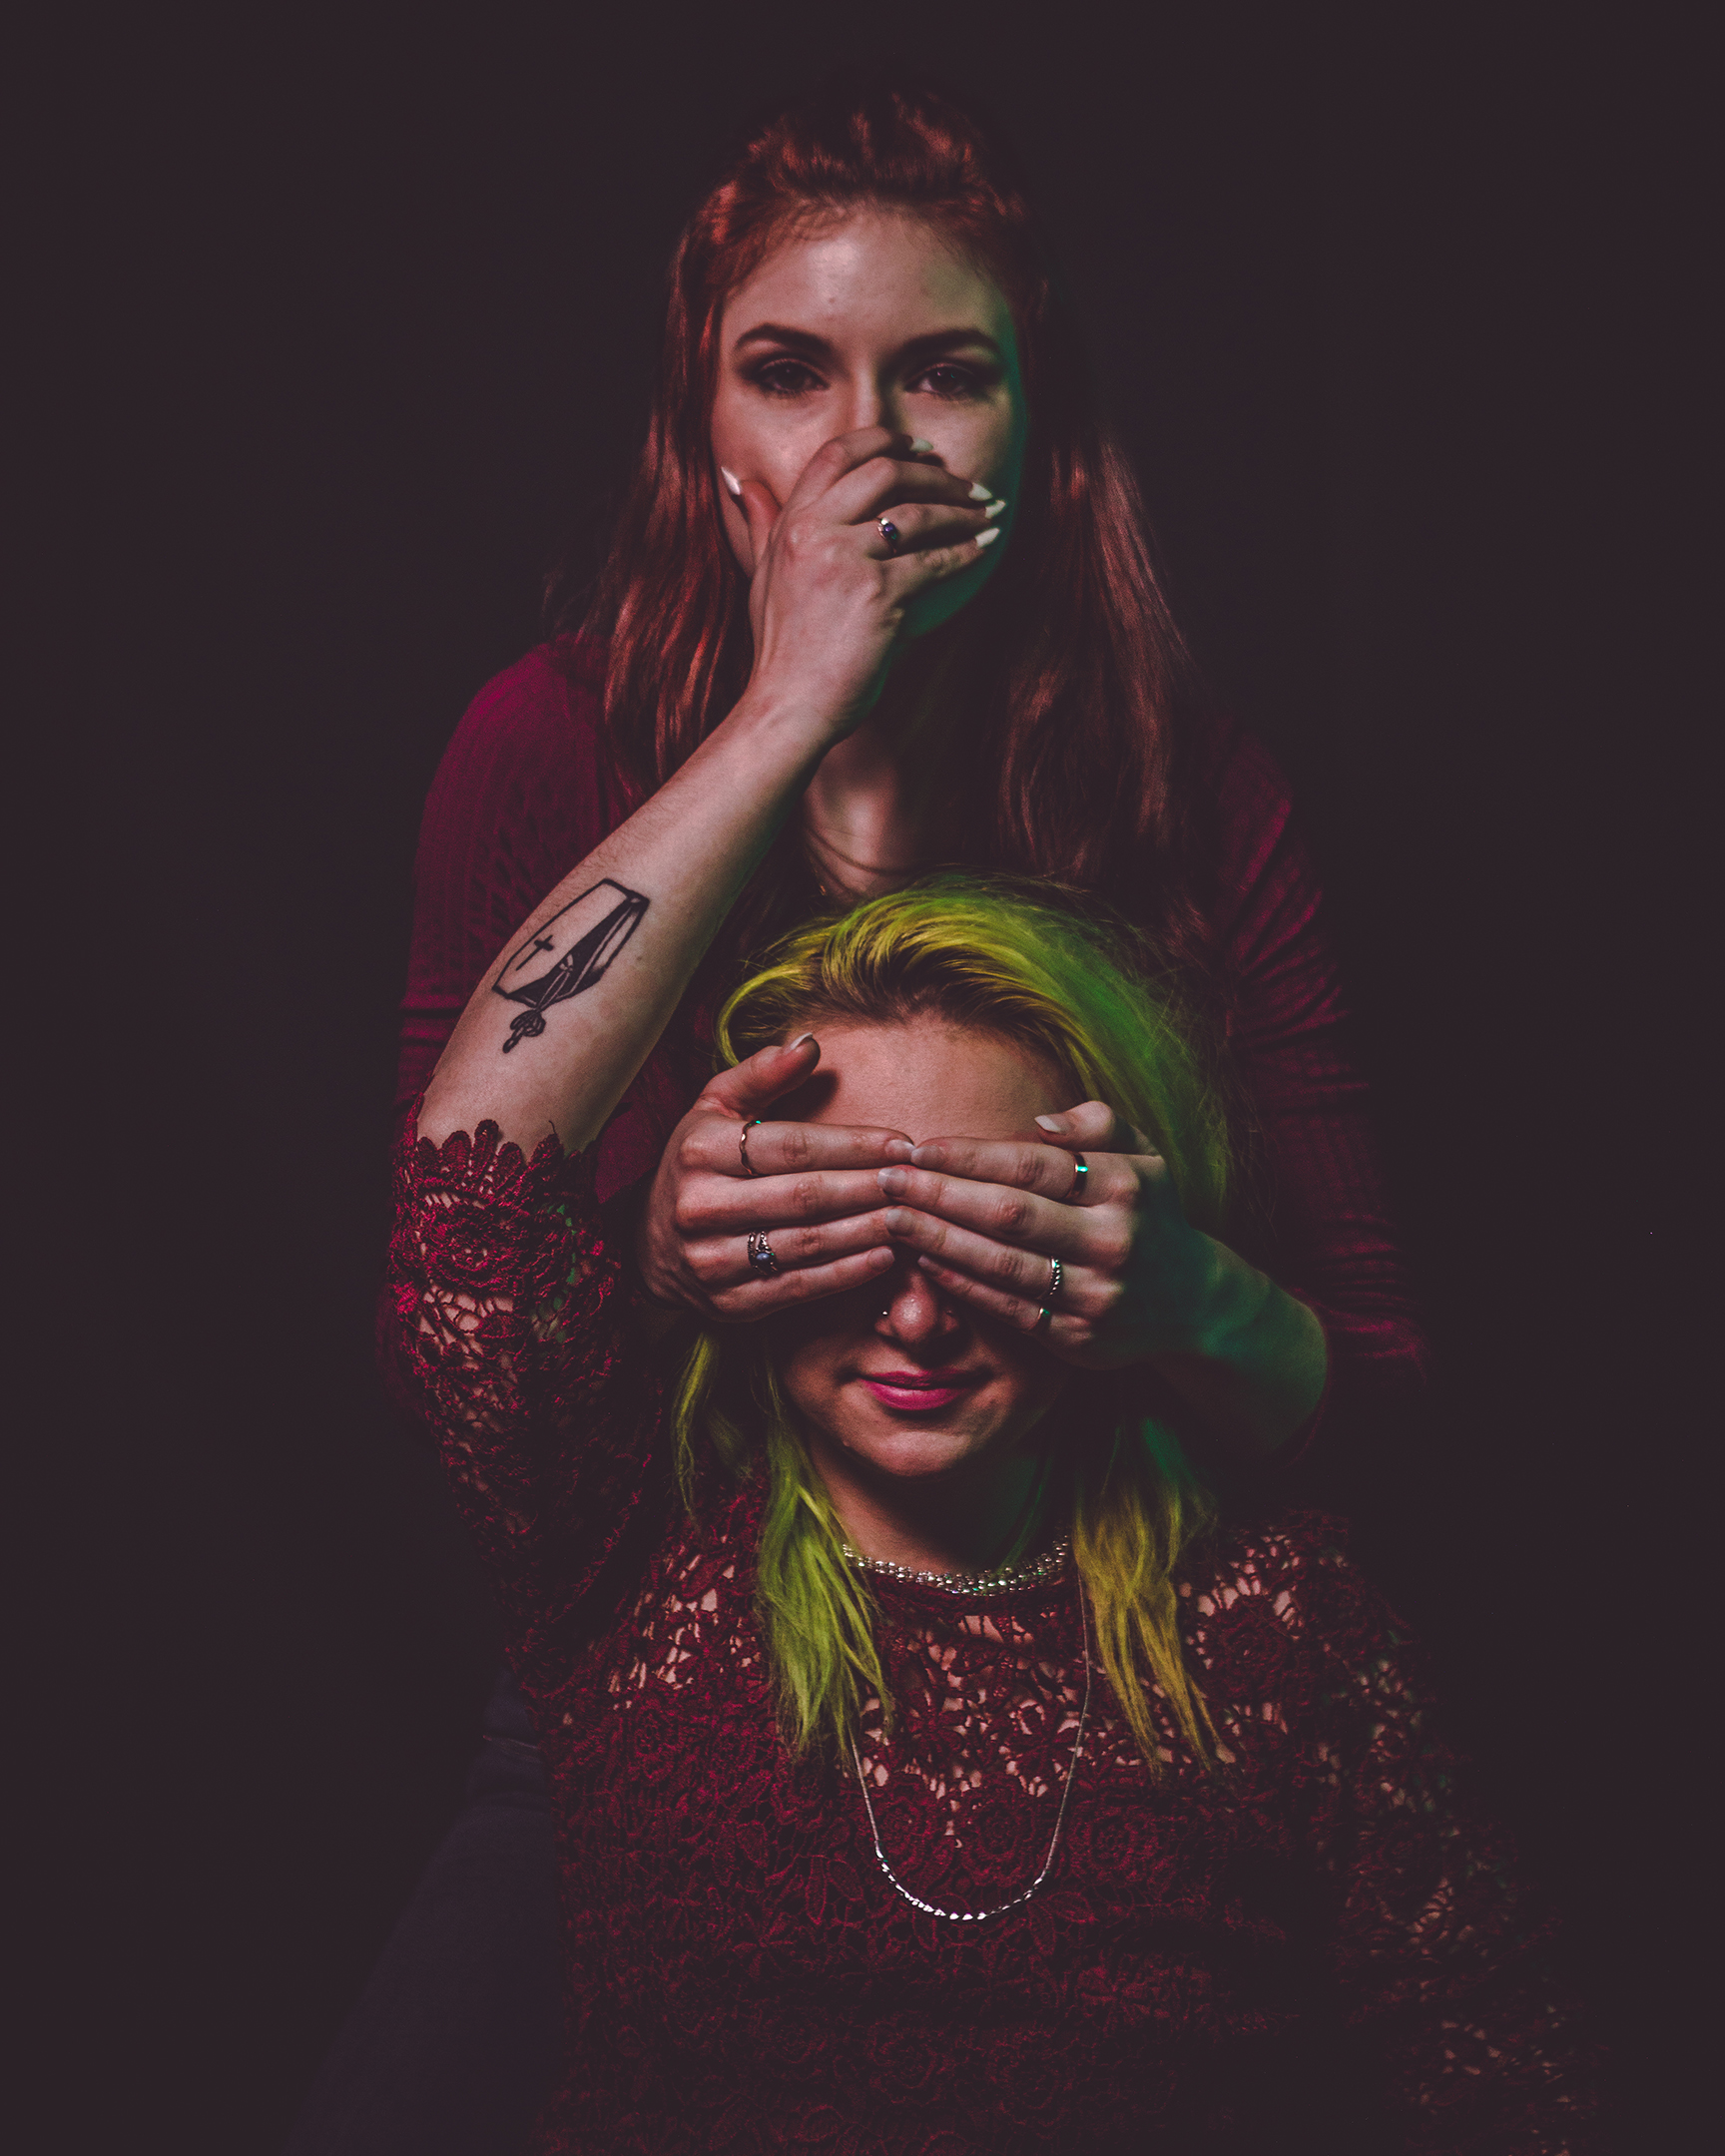 moody photograph of two females with red and green hair creating see no evil, hear no evil, speak no evil